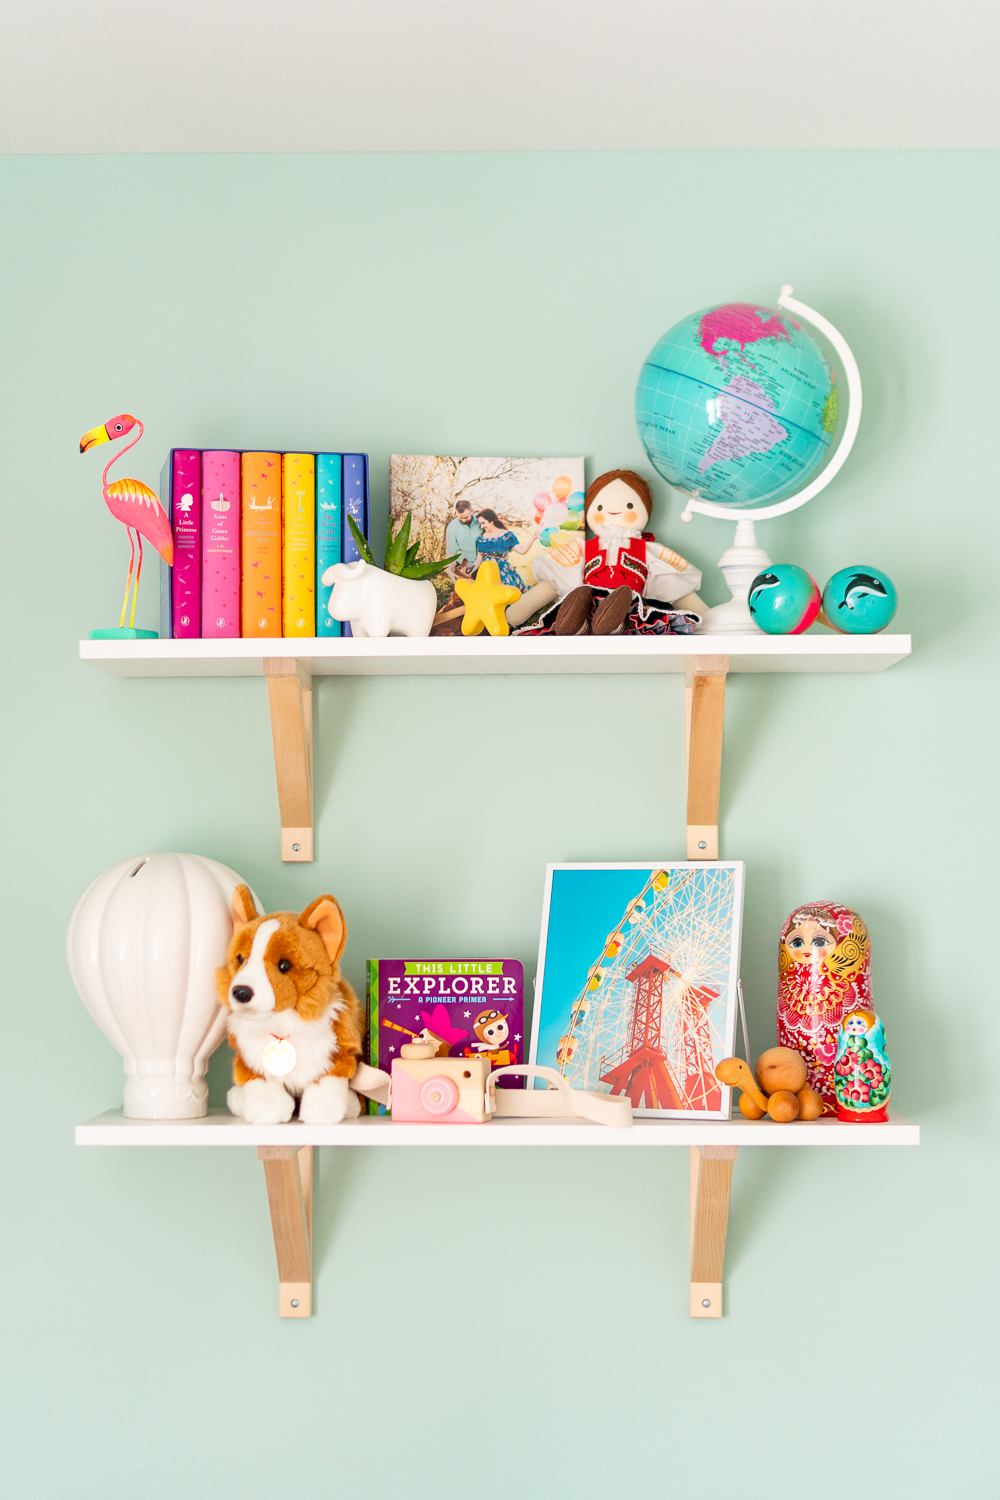 Travel inspired nursery decorations on shelves